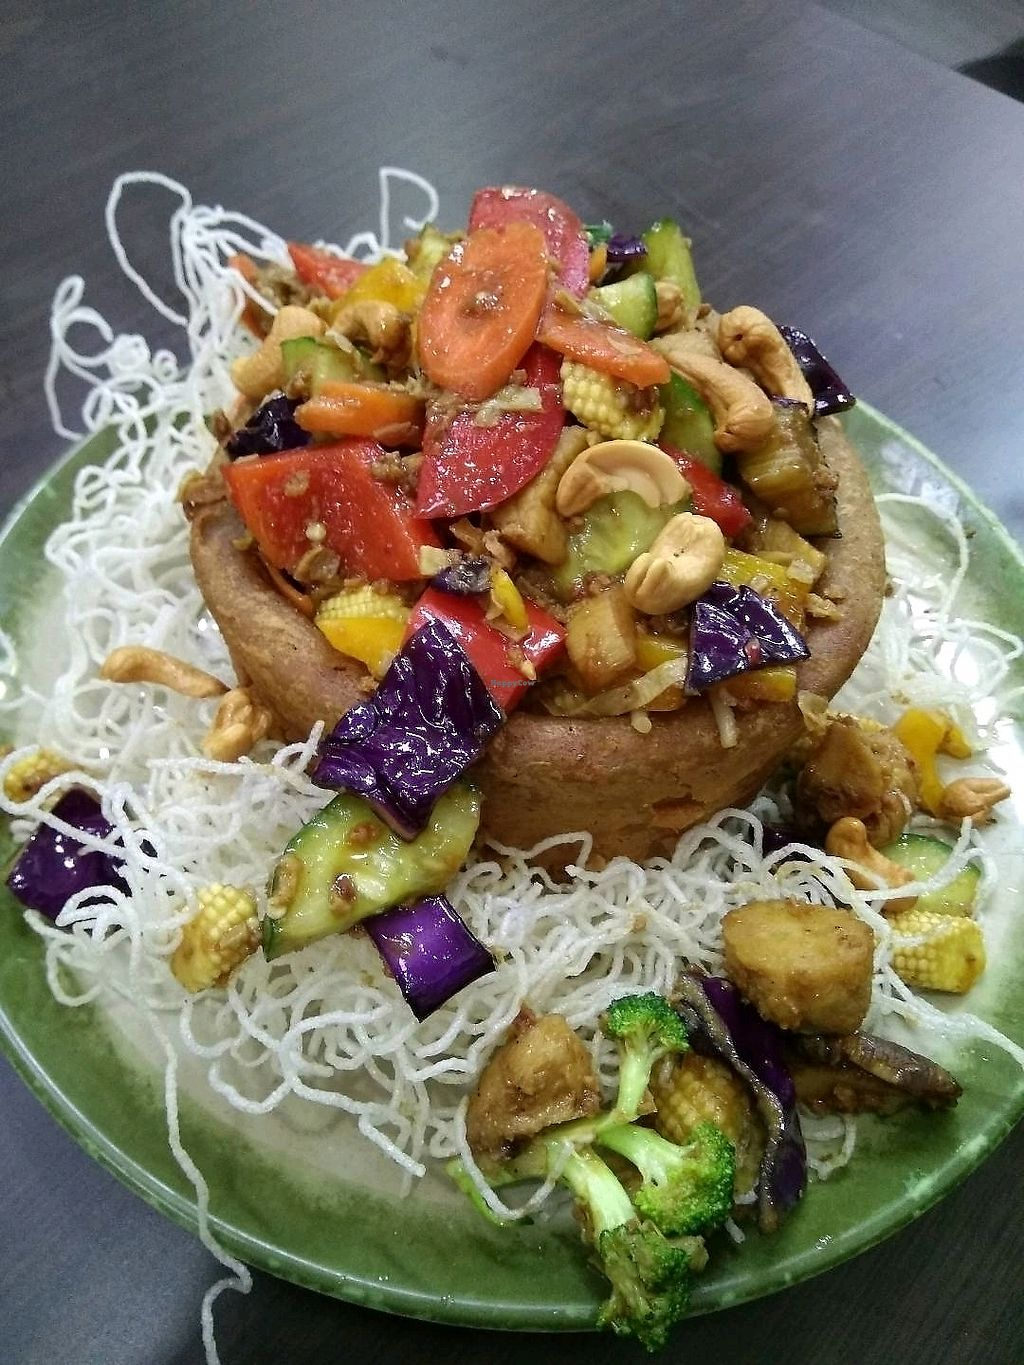 "Photo of Yi Xin Vegan Restaurant  by <a href=""/members/profile/AdelOng"">AdelOng</a> <br/>Deep Fried Yam Ring @$15.00 <br/> April 10, 2018  - <a href='/contact/abuse/image/10289/383126'>Report</a>"